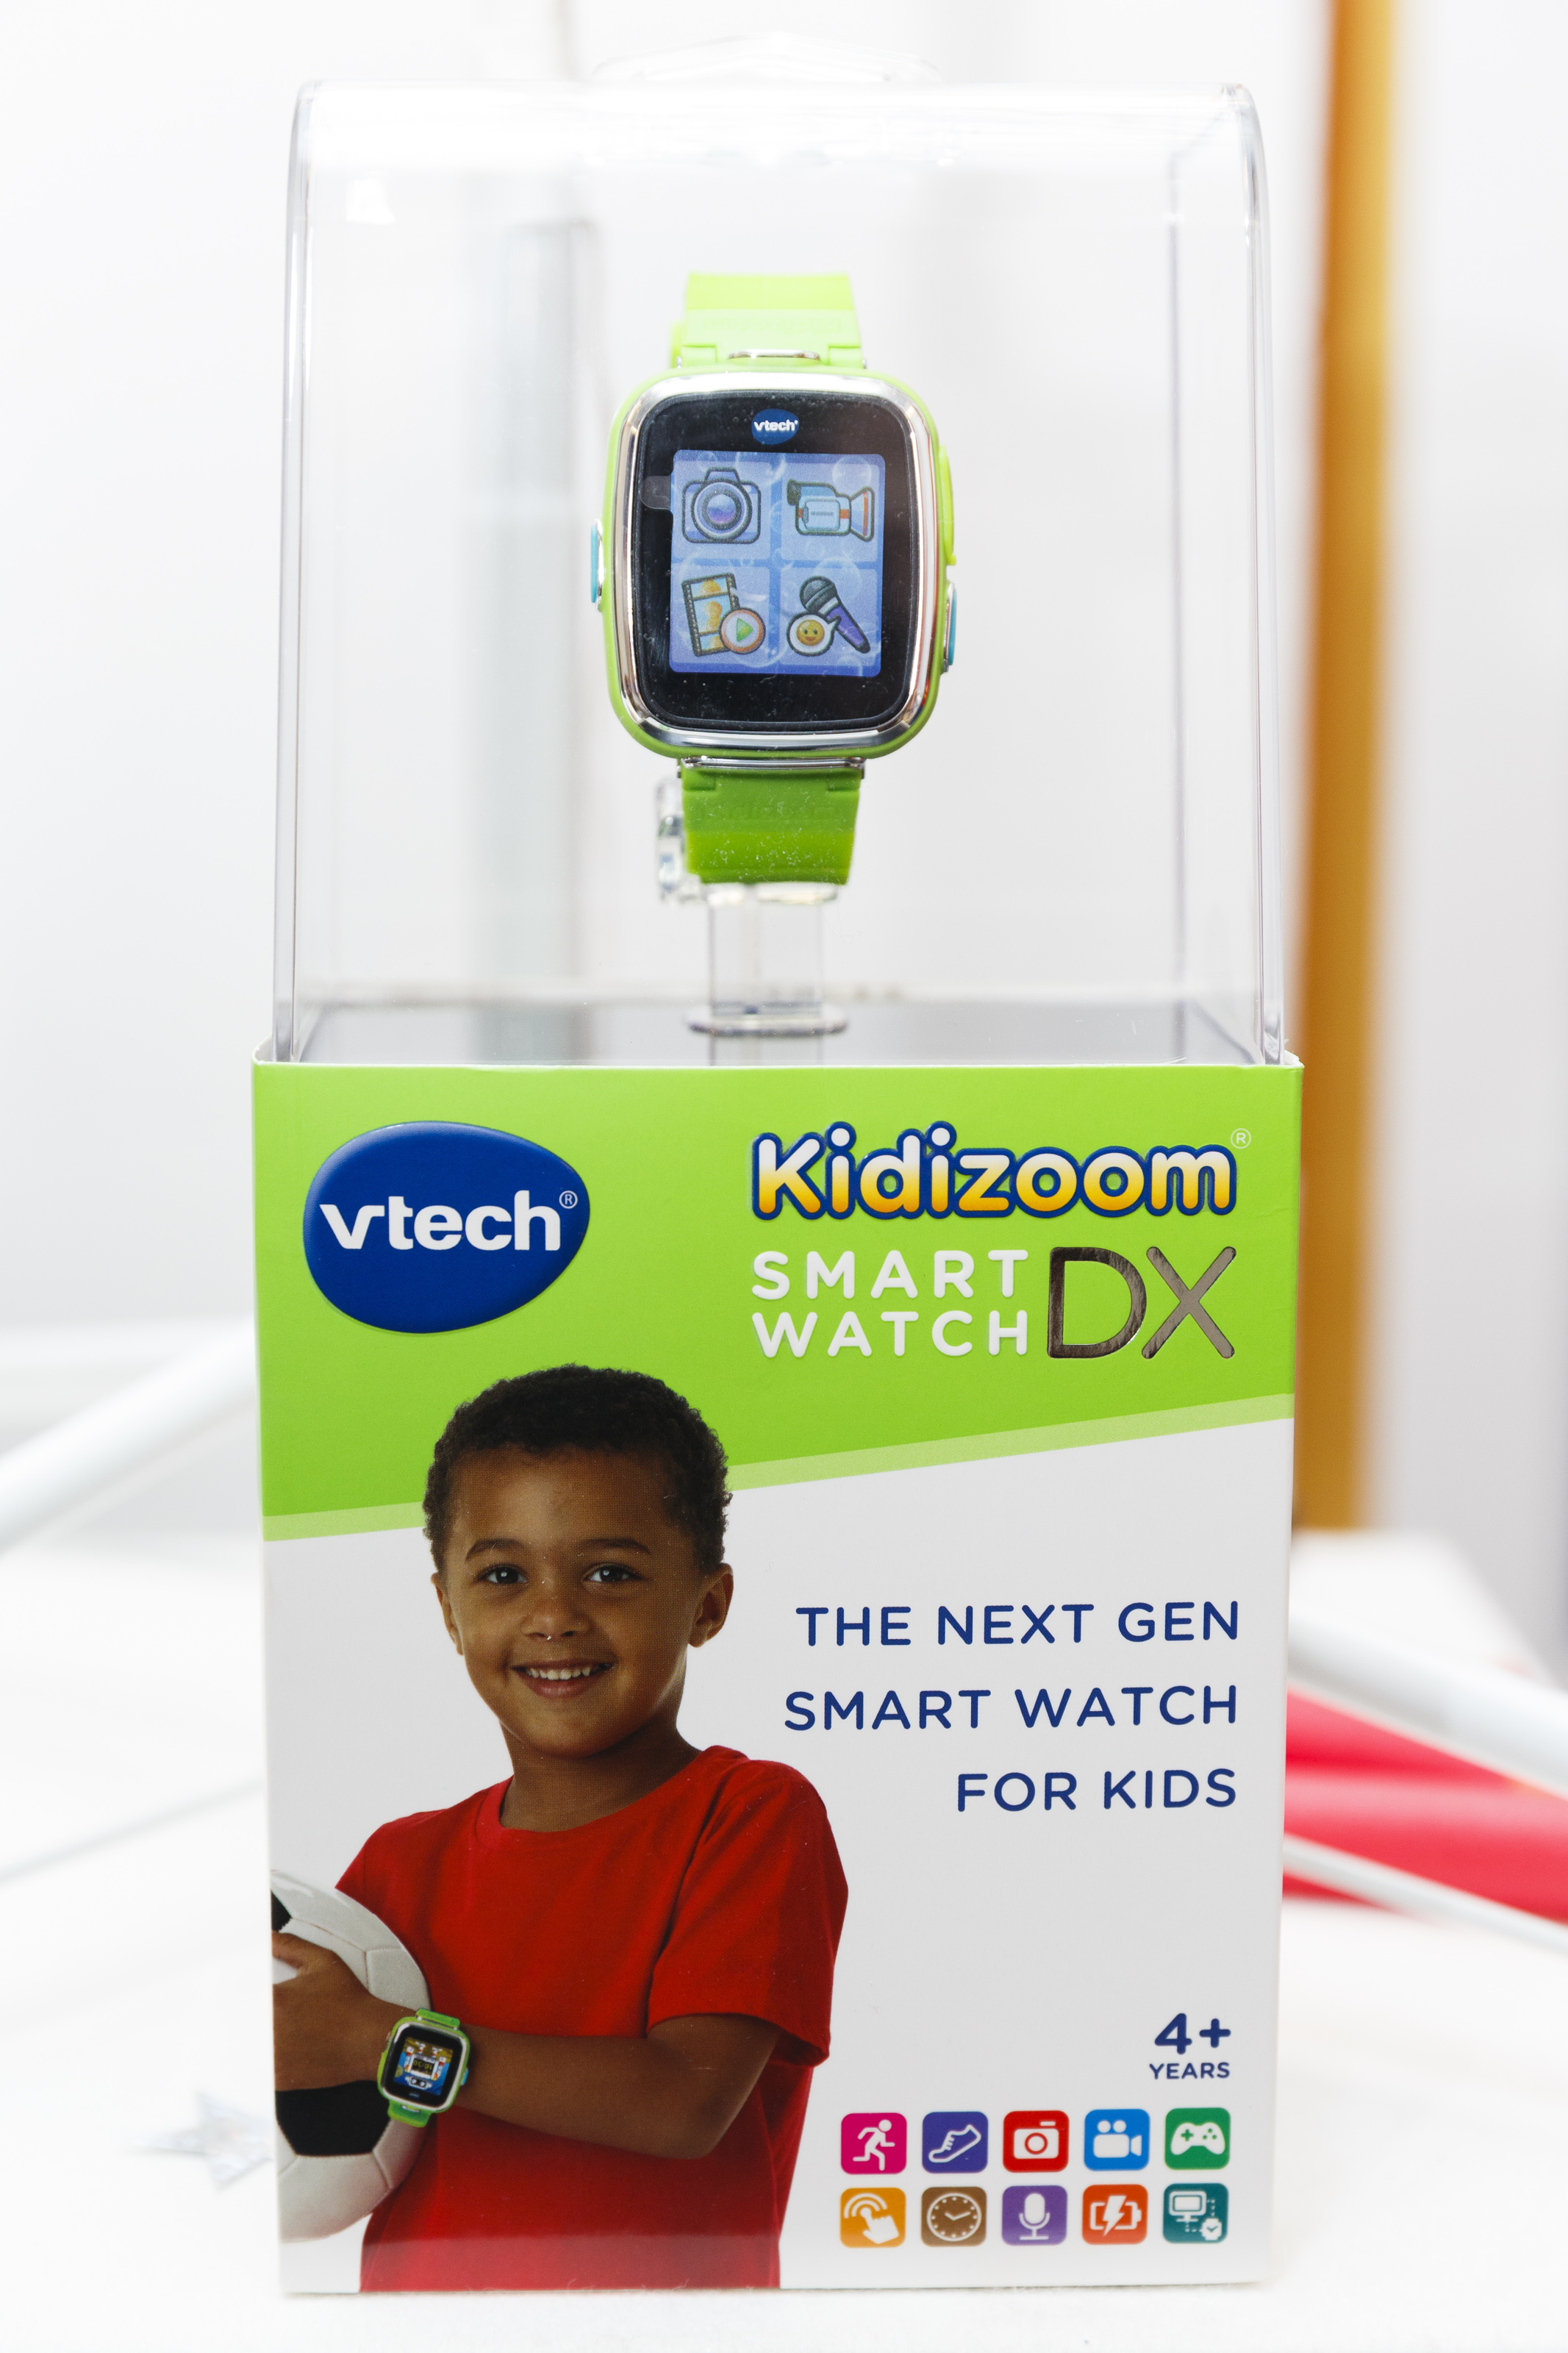 V-Tech Kidizoom Smart Watch